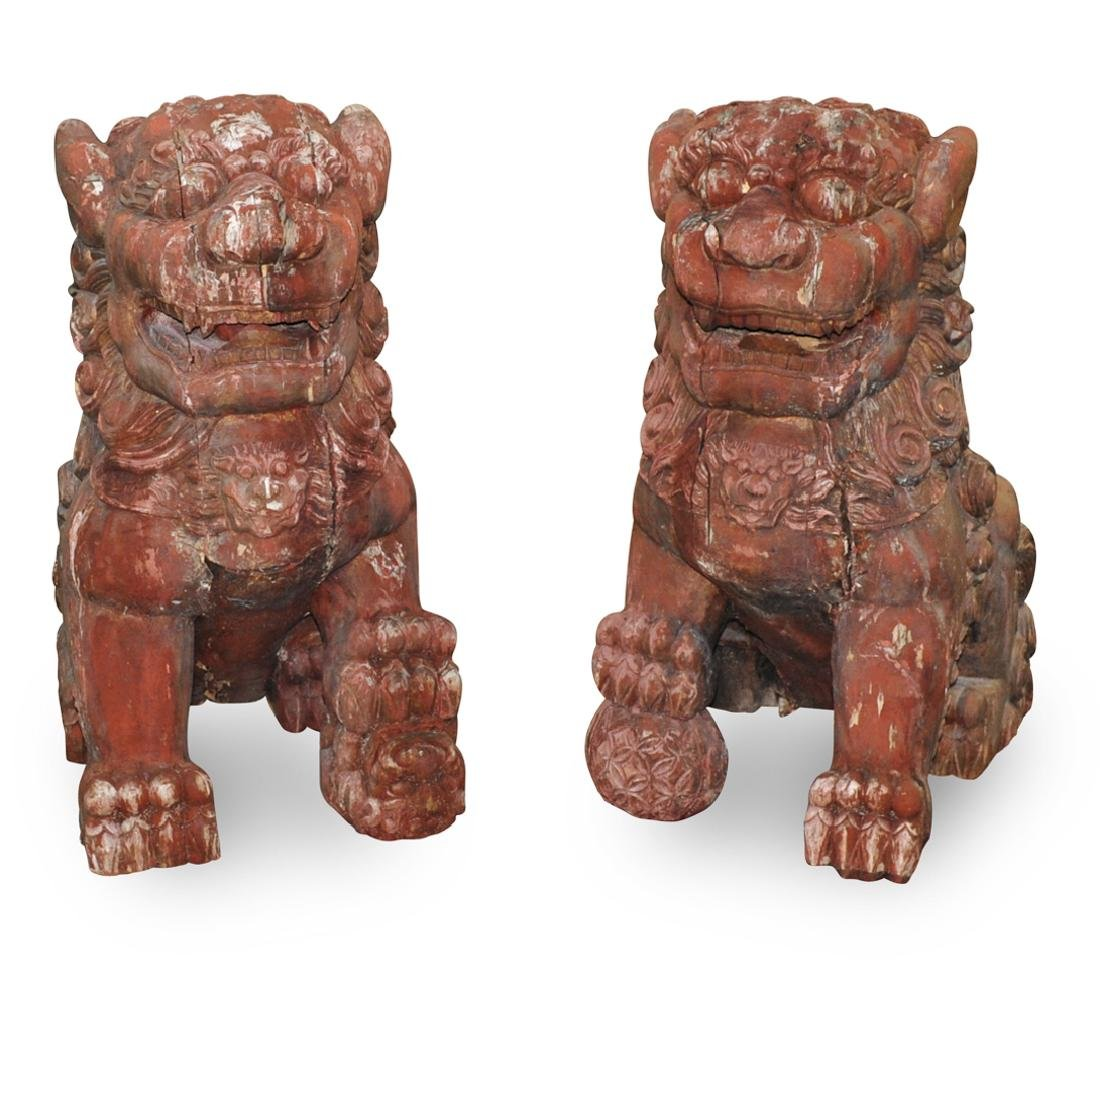 Palace Sized Chinese Carved Wood Foo Dogs